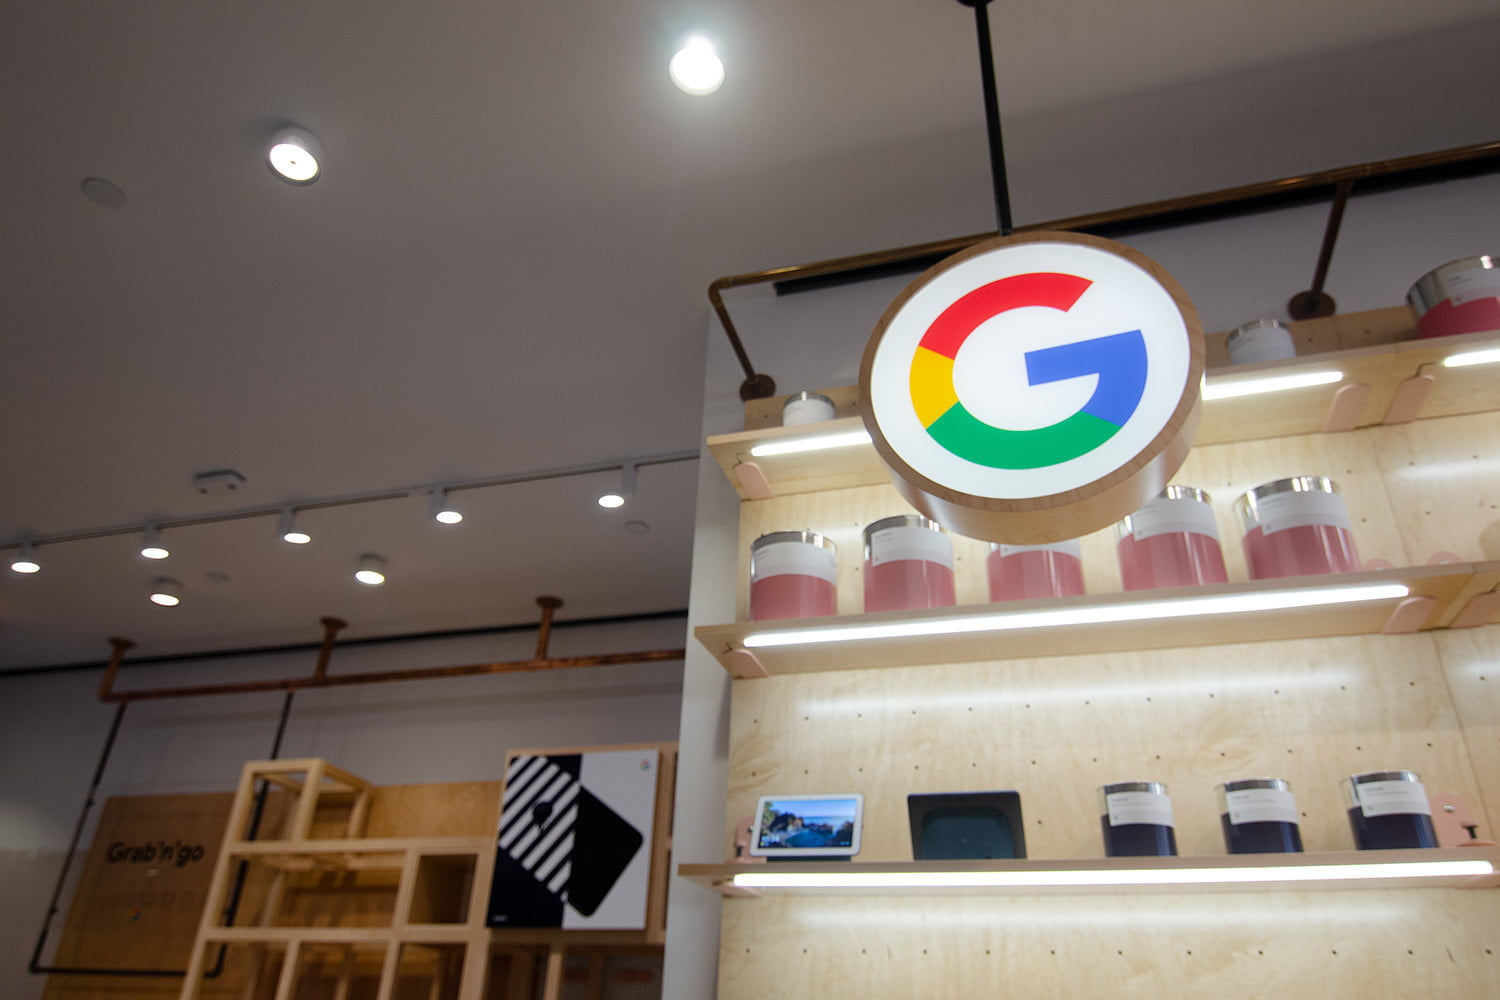 Is 2020 going to be a make-or-break year for Google hardware?